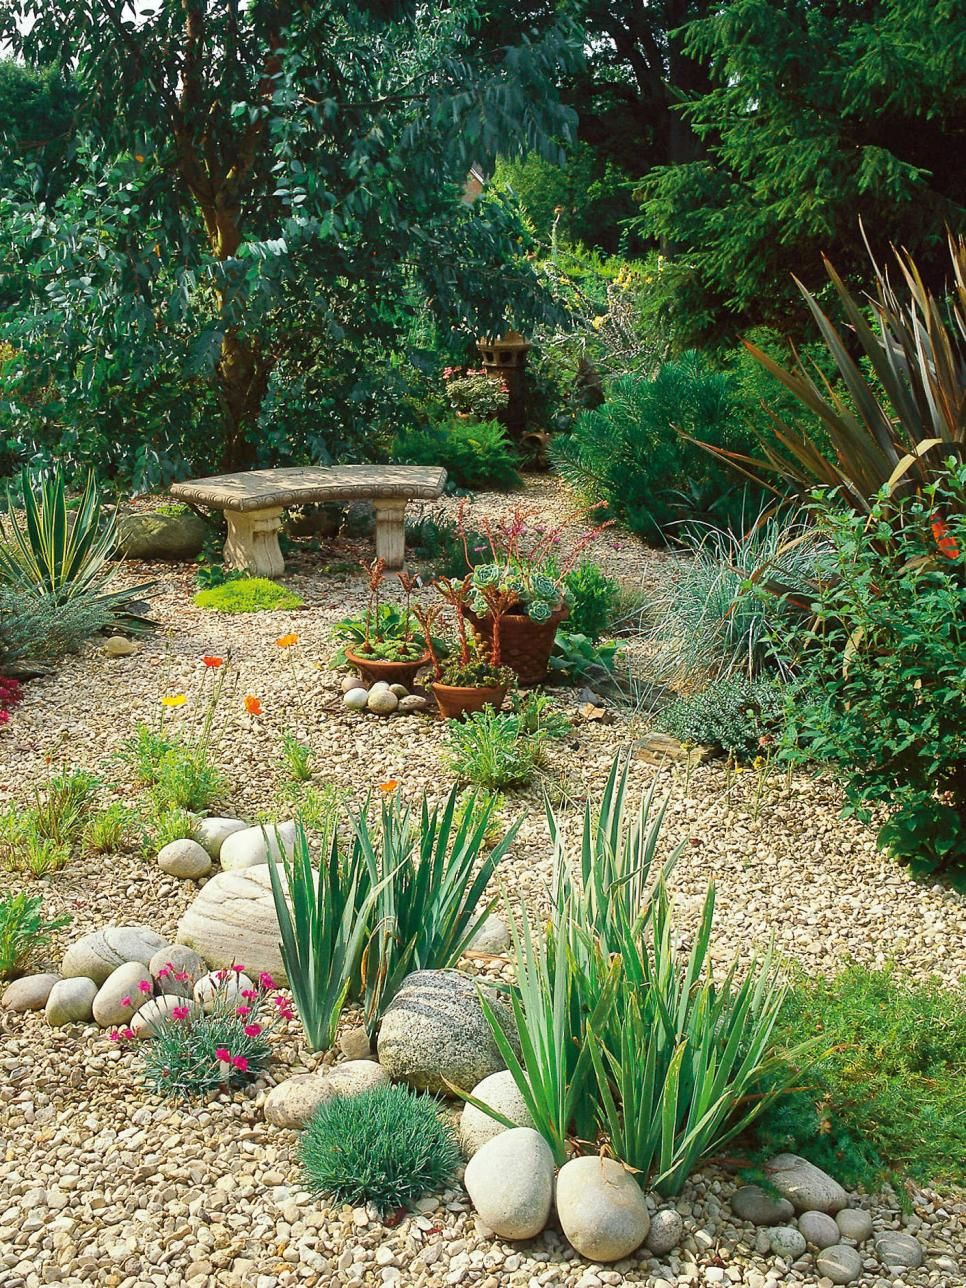 Exceptionnel HGTV Gardens Shows Off The Many Ways Gravel, Pebbles, Bark Chips And Other  Soft